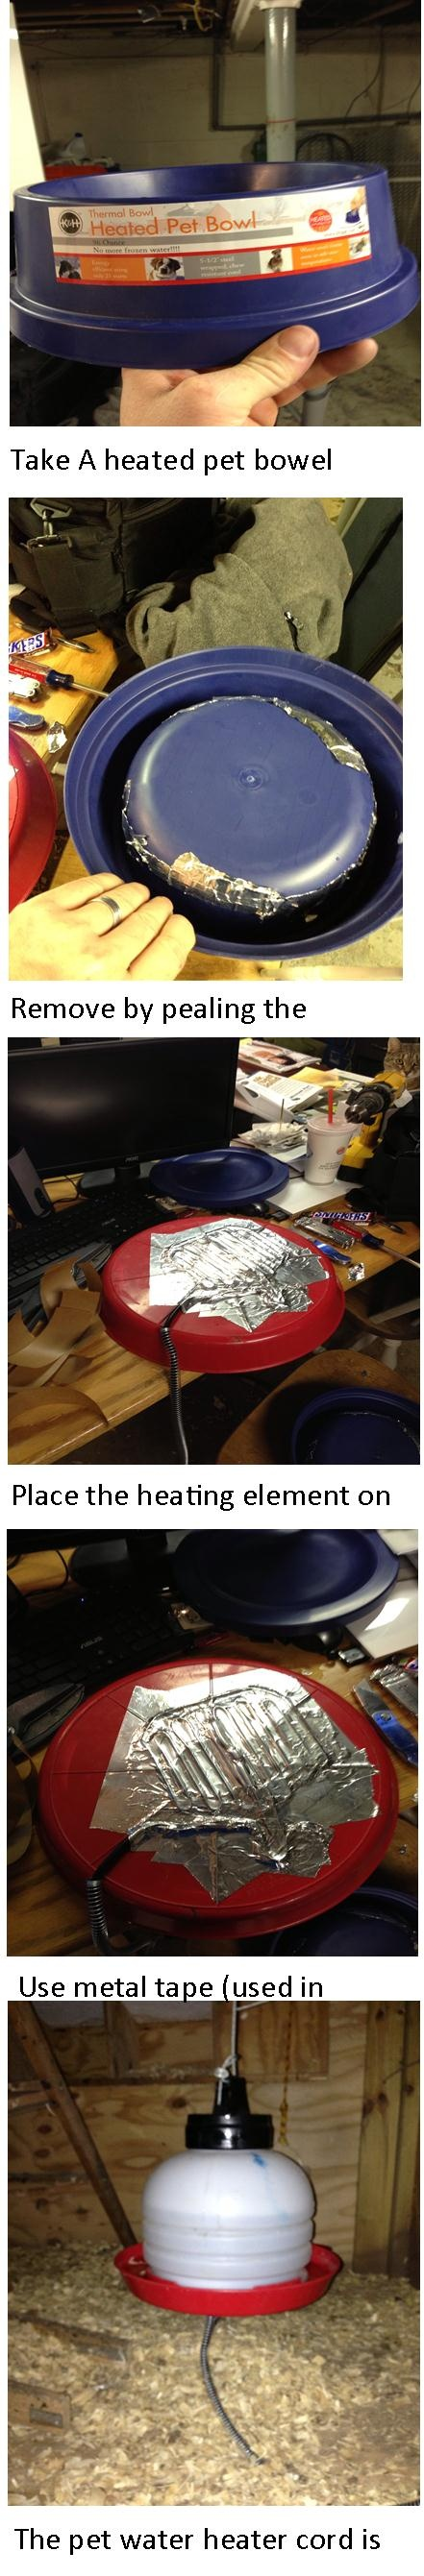 Chicken Water heater - why not just use heat tape?